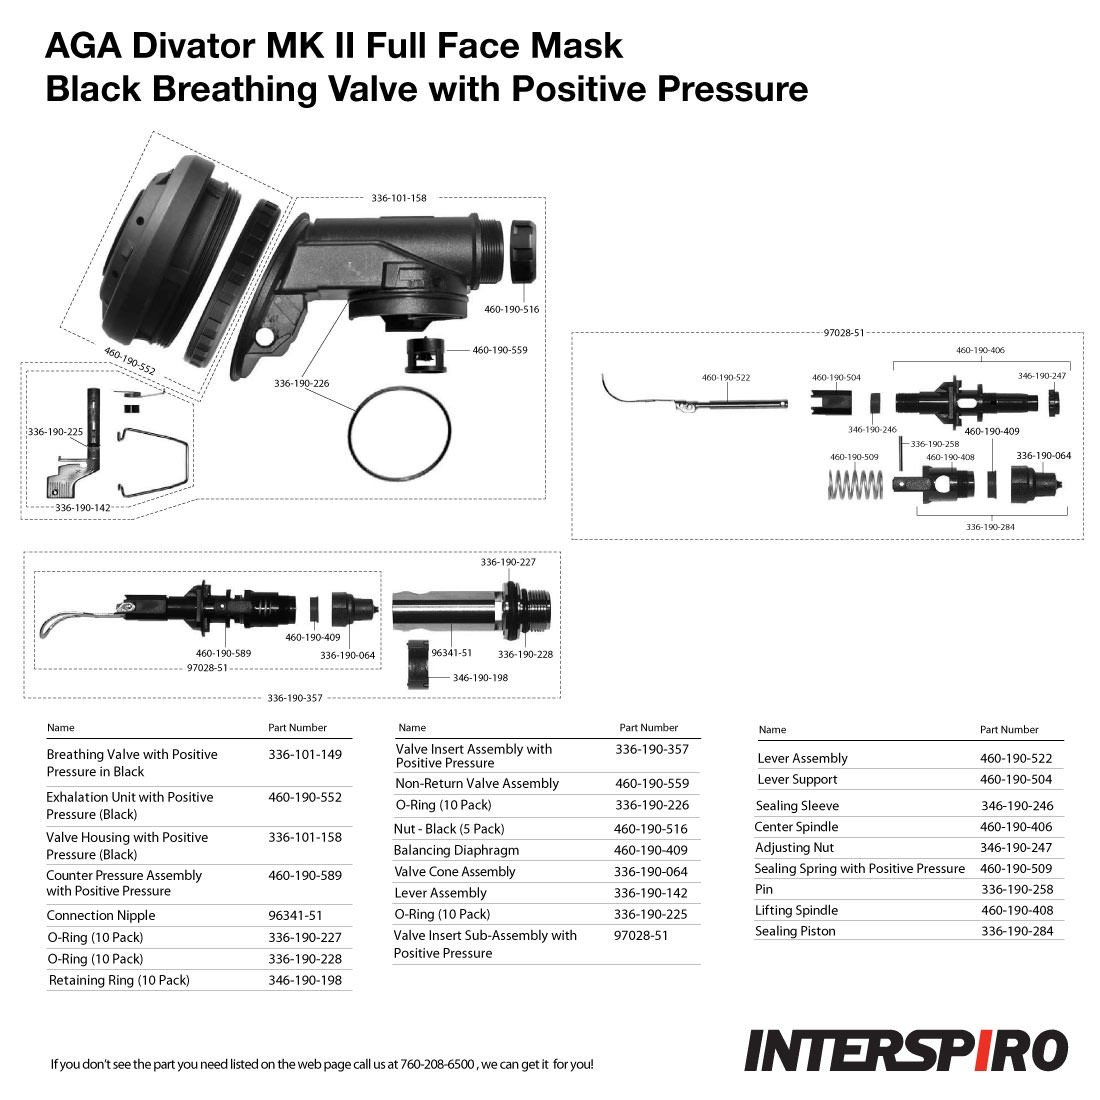 Interspiro AGA Divator MK II Full Face Mask with Positive Pressure Regulator - Natural Rubber - Grey - Breathing Valve